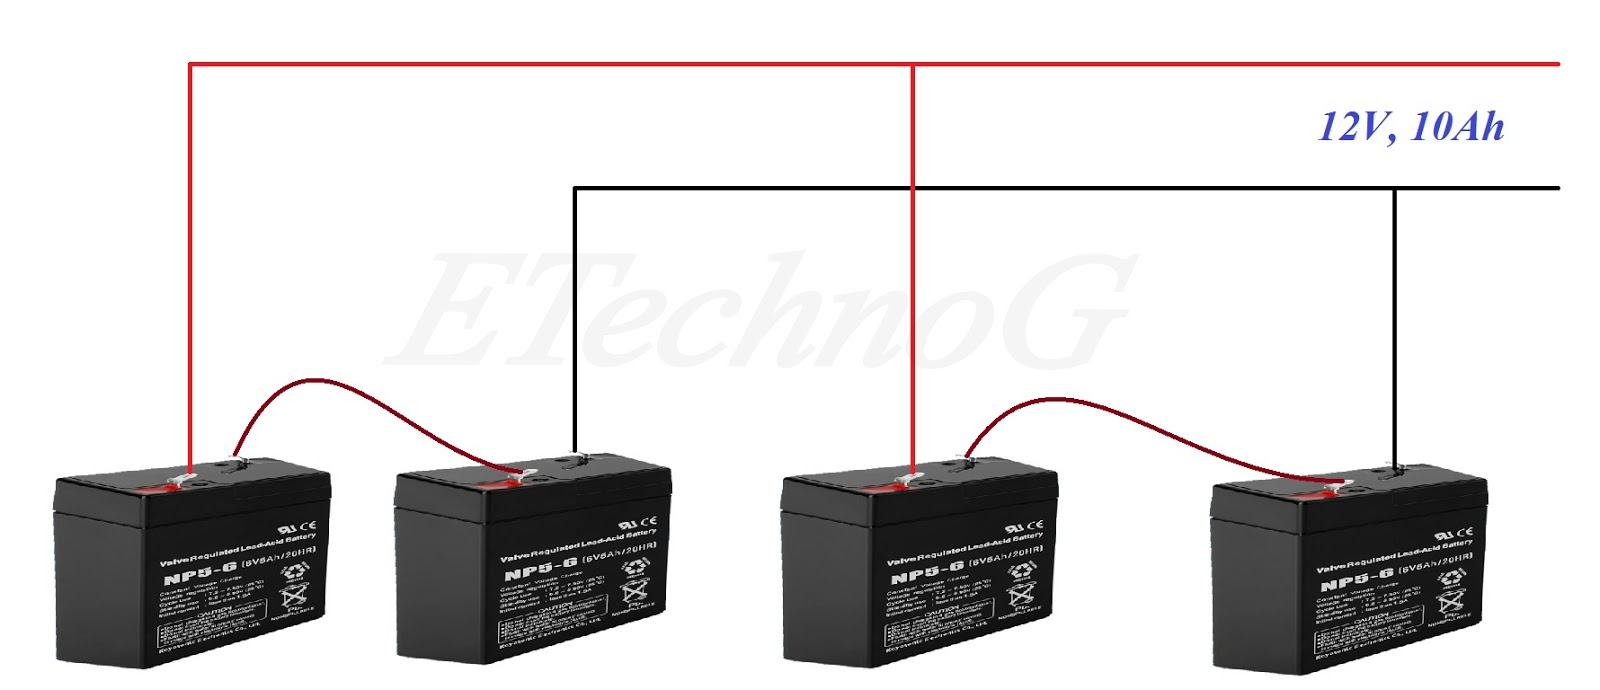 Battery Wiring In Series And Parallel Full Explanation Etechnog Batteries